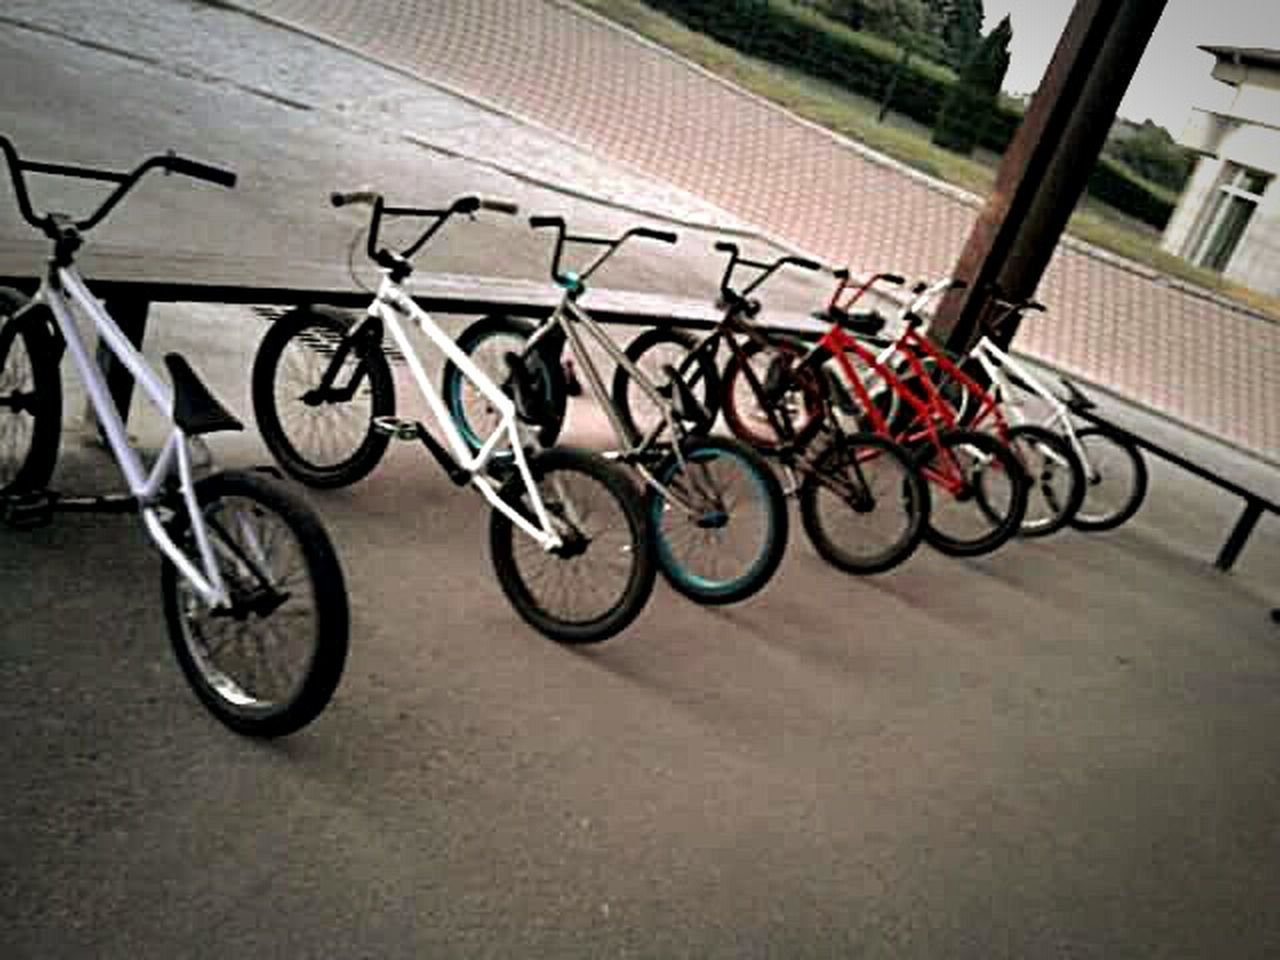 Sortie bmx :-) Bmx  Bicycle Transportation Outdoors Sports Photography Racing Bicycle Photography Photographer Photooftheday Cycle Bycicles